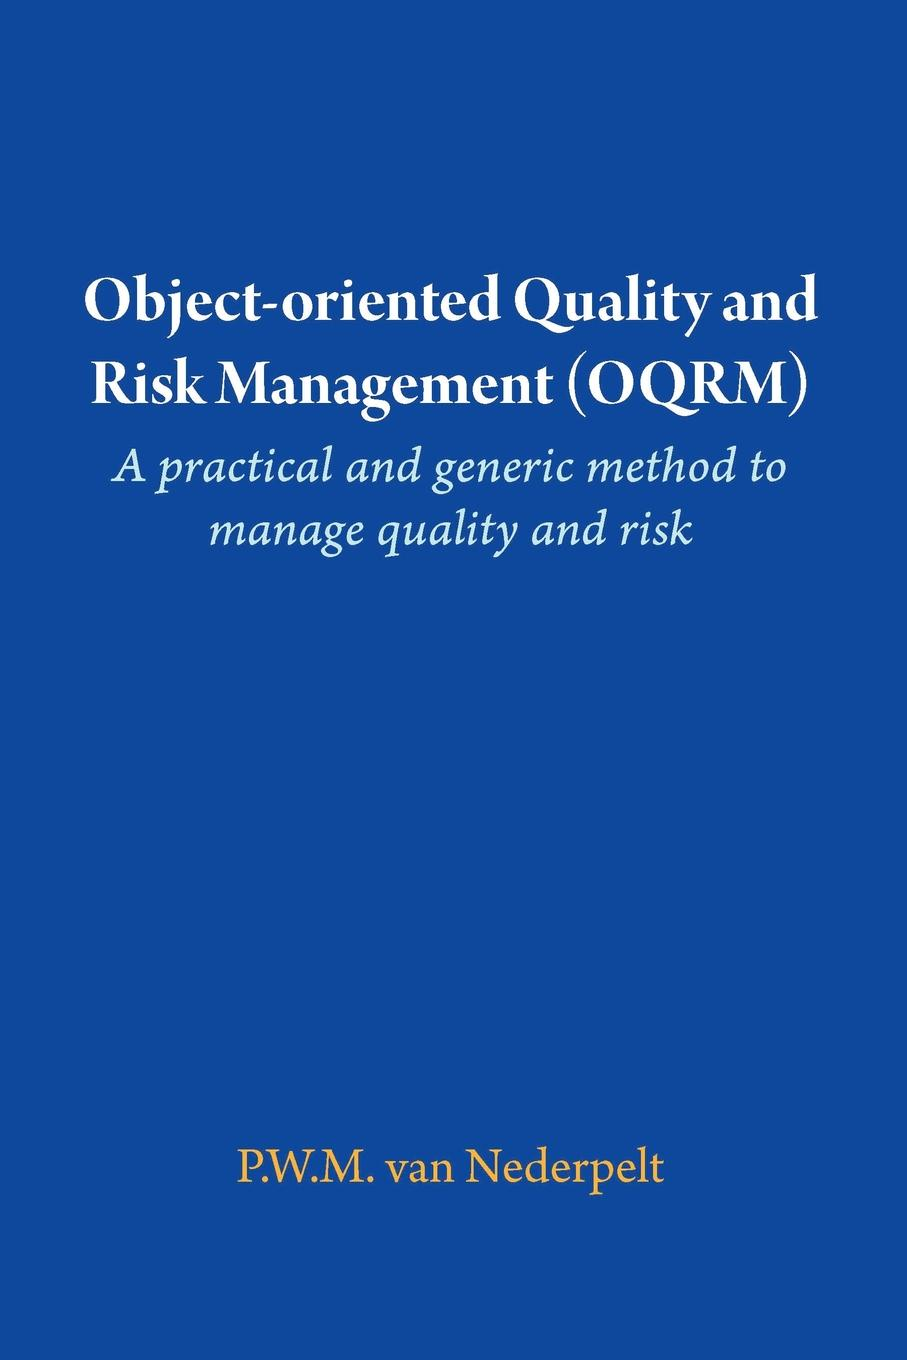 Object-oriented Quality and Risk Management (OQRM). A practical and generic method to manage quality and risk. Management aims to control quality and risks, but it often does...